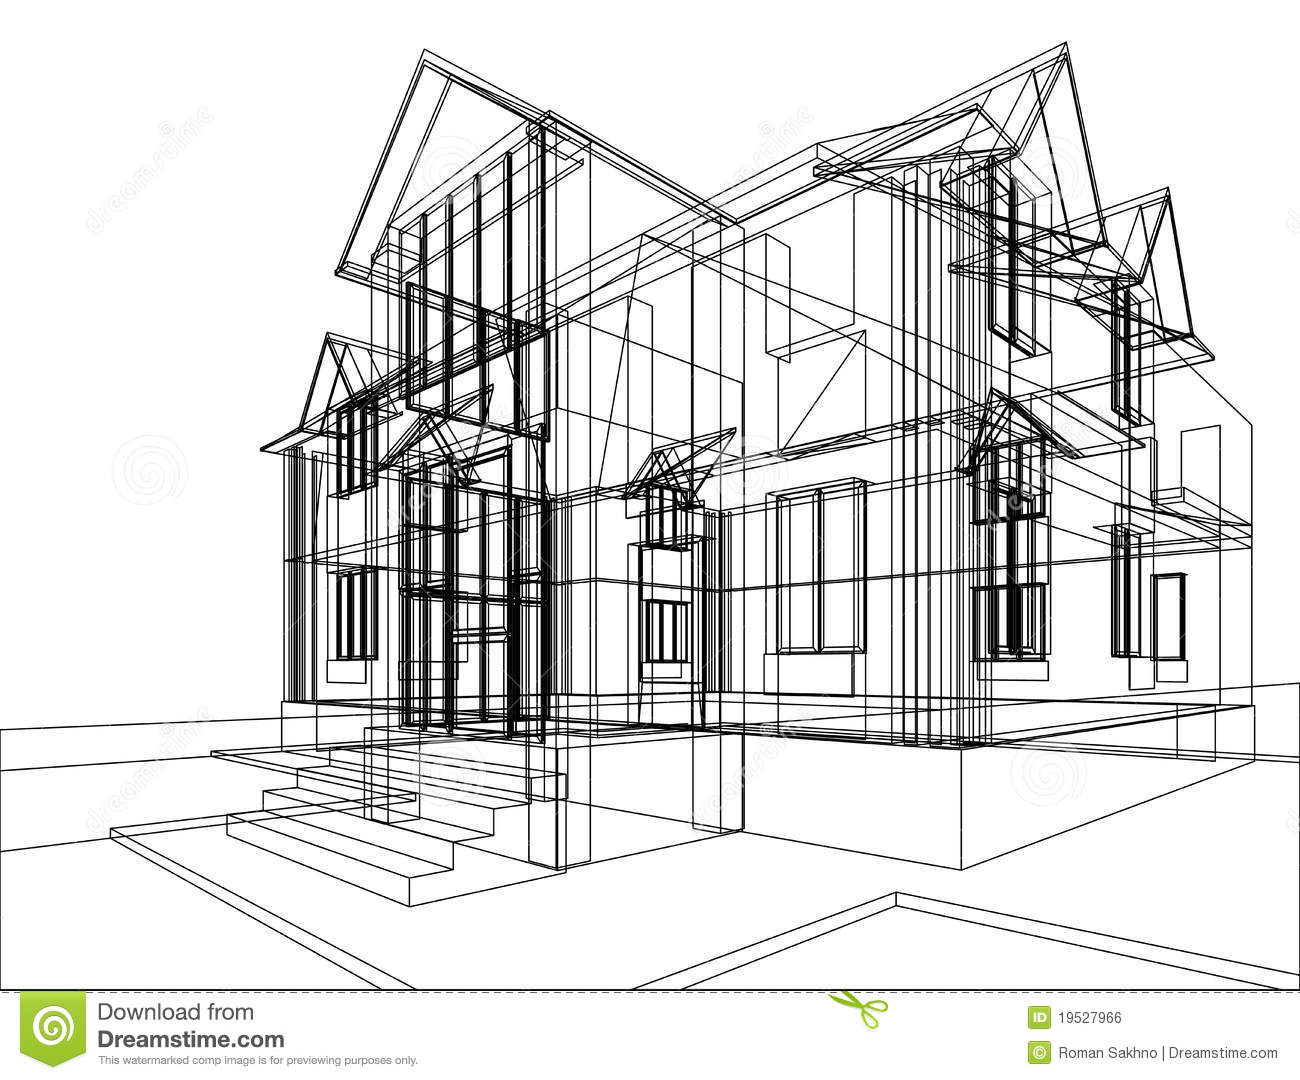 House construction sketch royalty free stock image image for Sketch house plans free